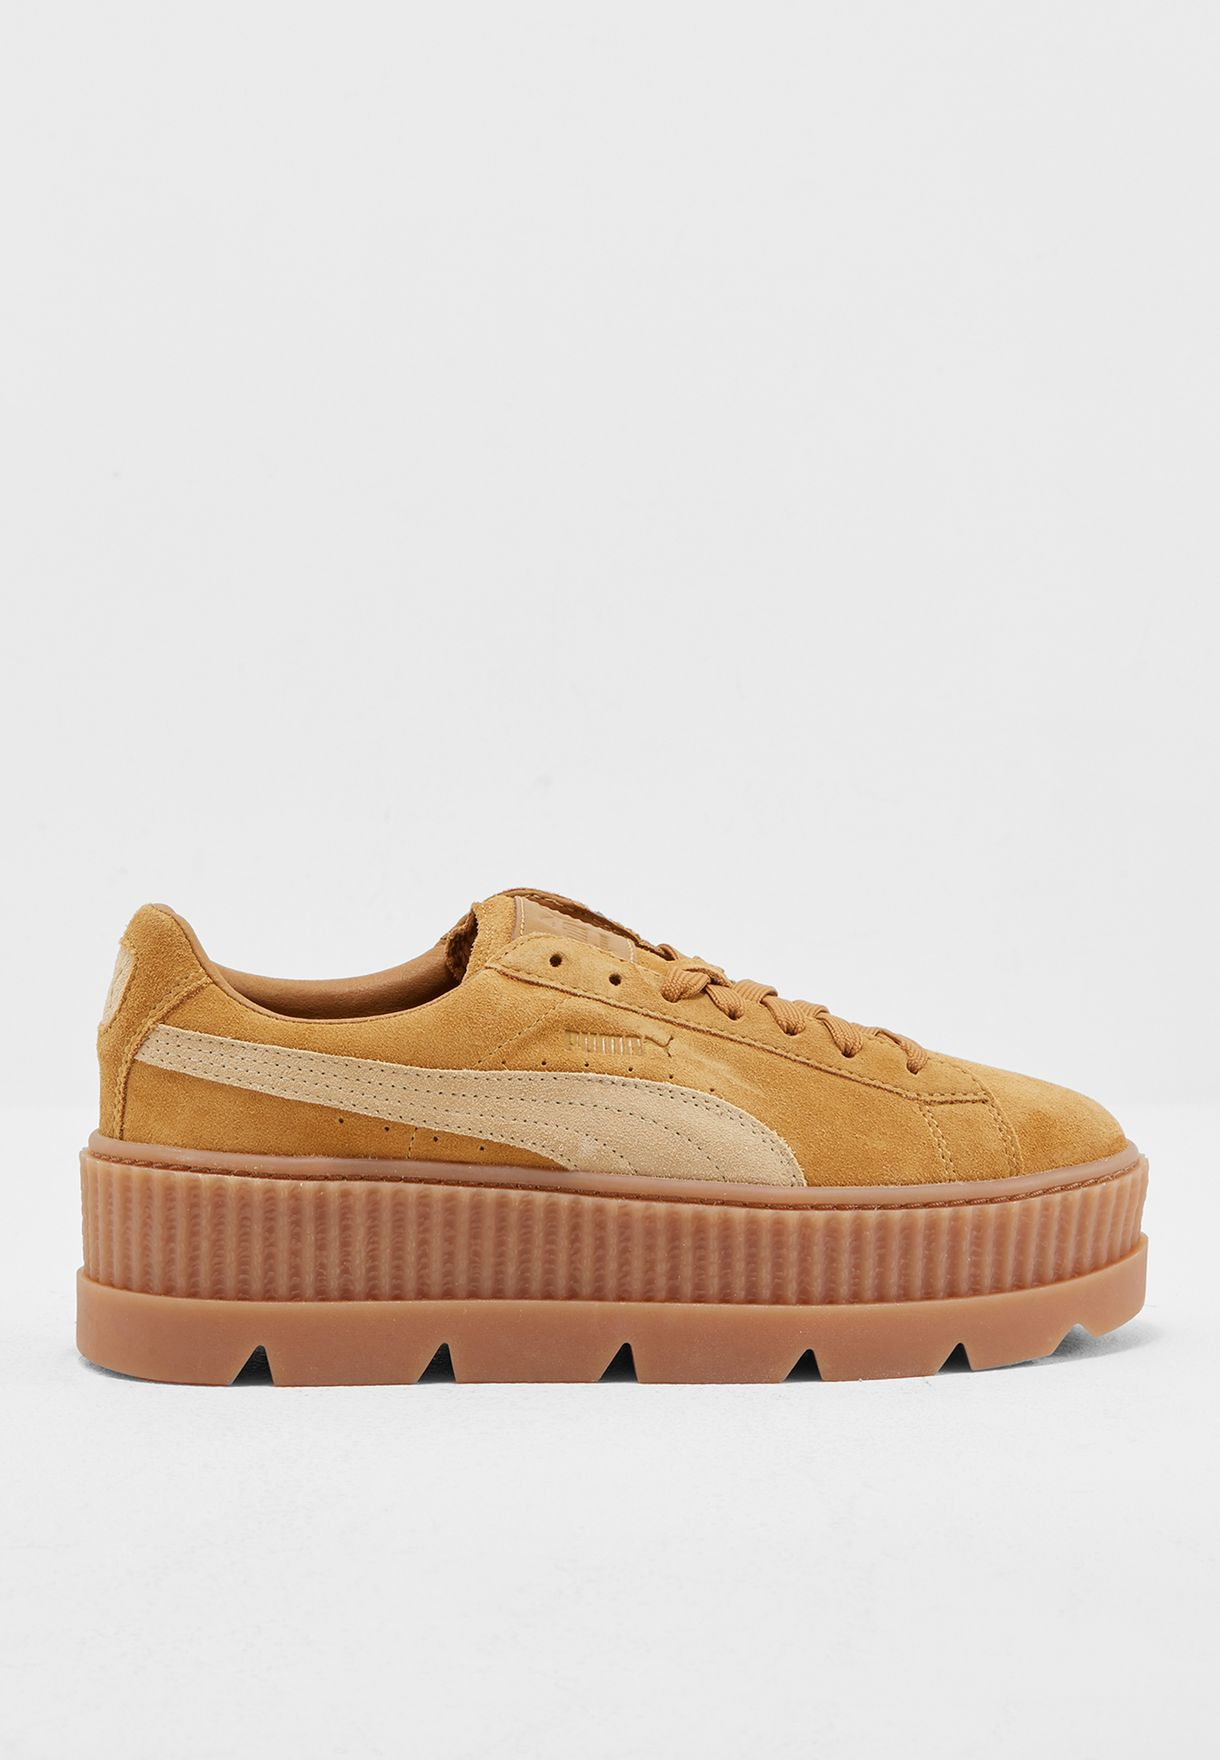 b676df4e8fe Shop PUMA x Fenty browns Fenty Cleated Creeper Suede 36626802 for ...